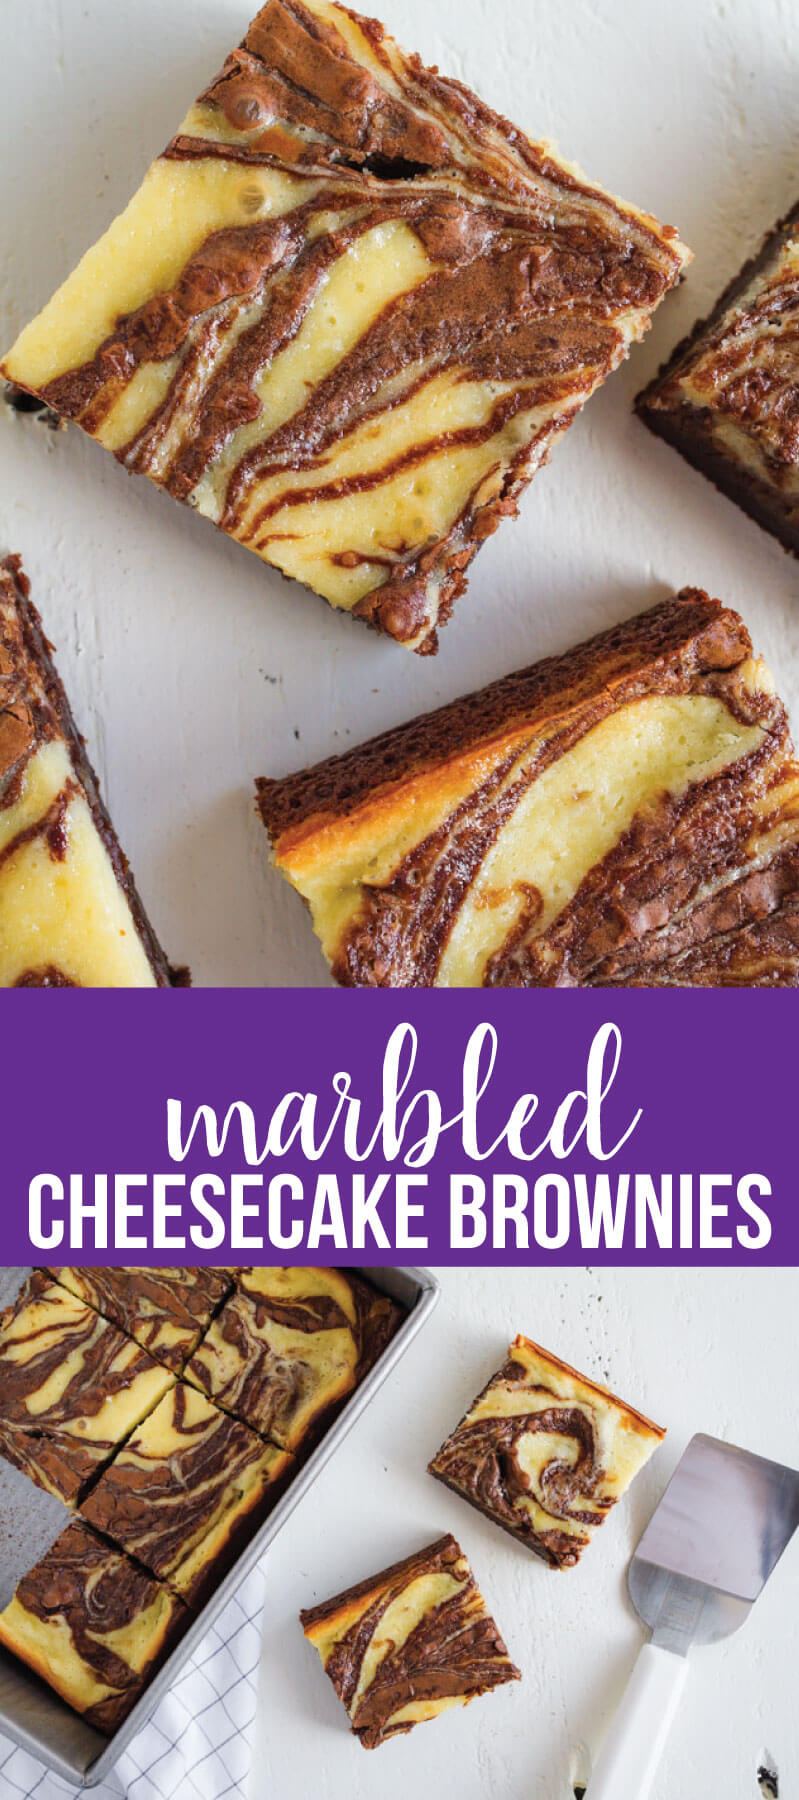 Cheesecake Brownies - they are delicious and simple and a fun take on regular brownies. www.thirtyhandmadedays.com